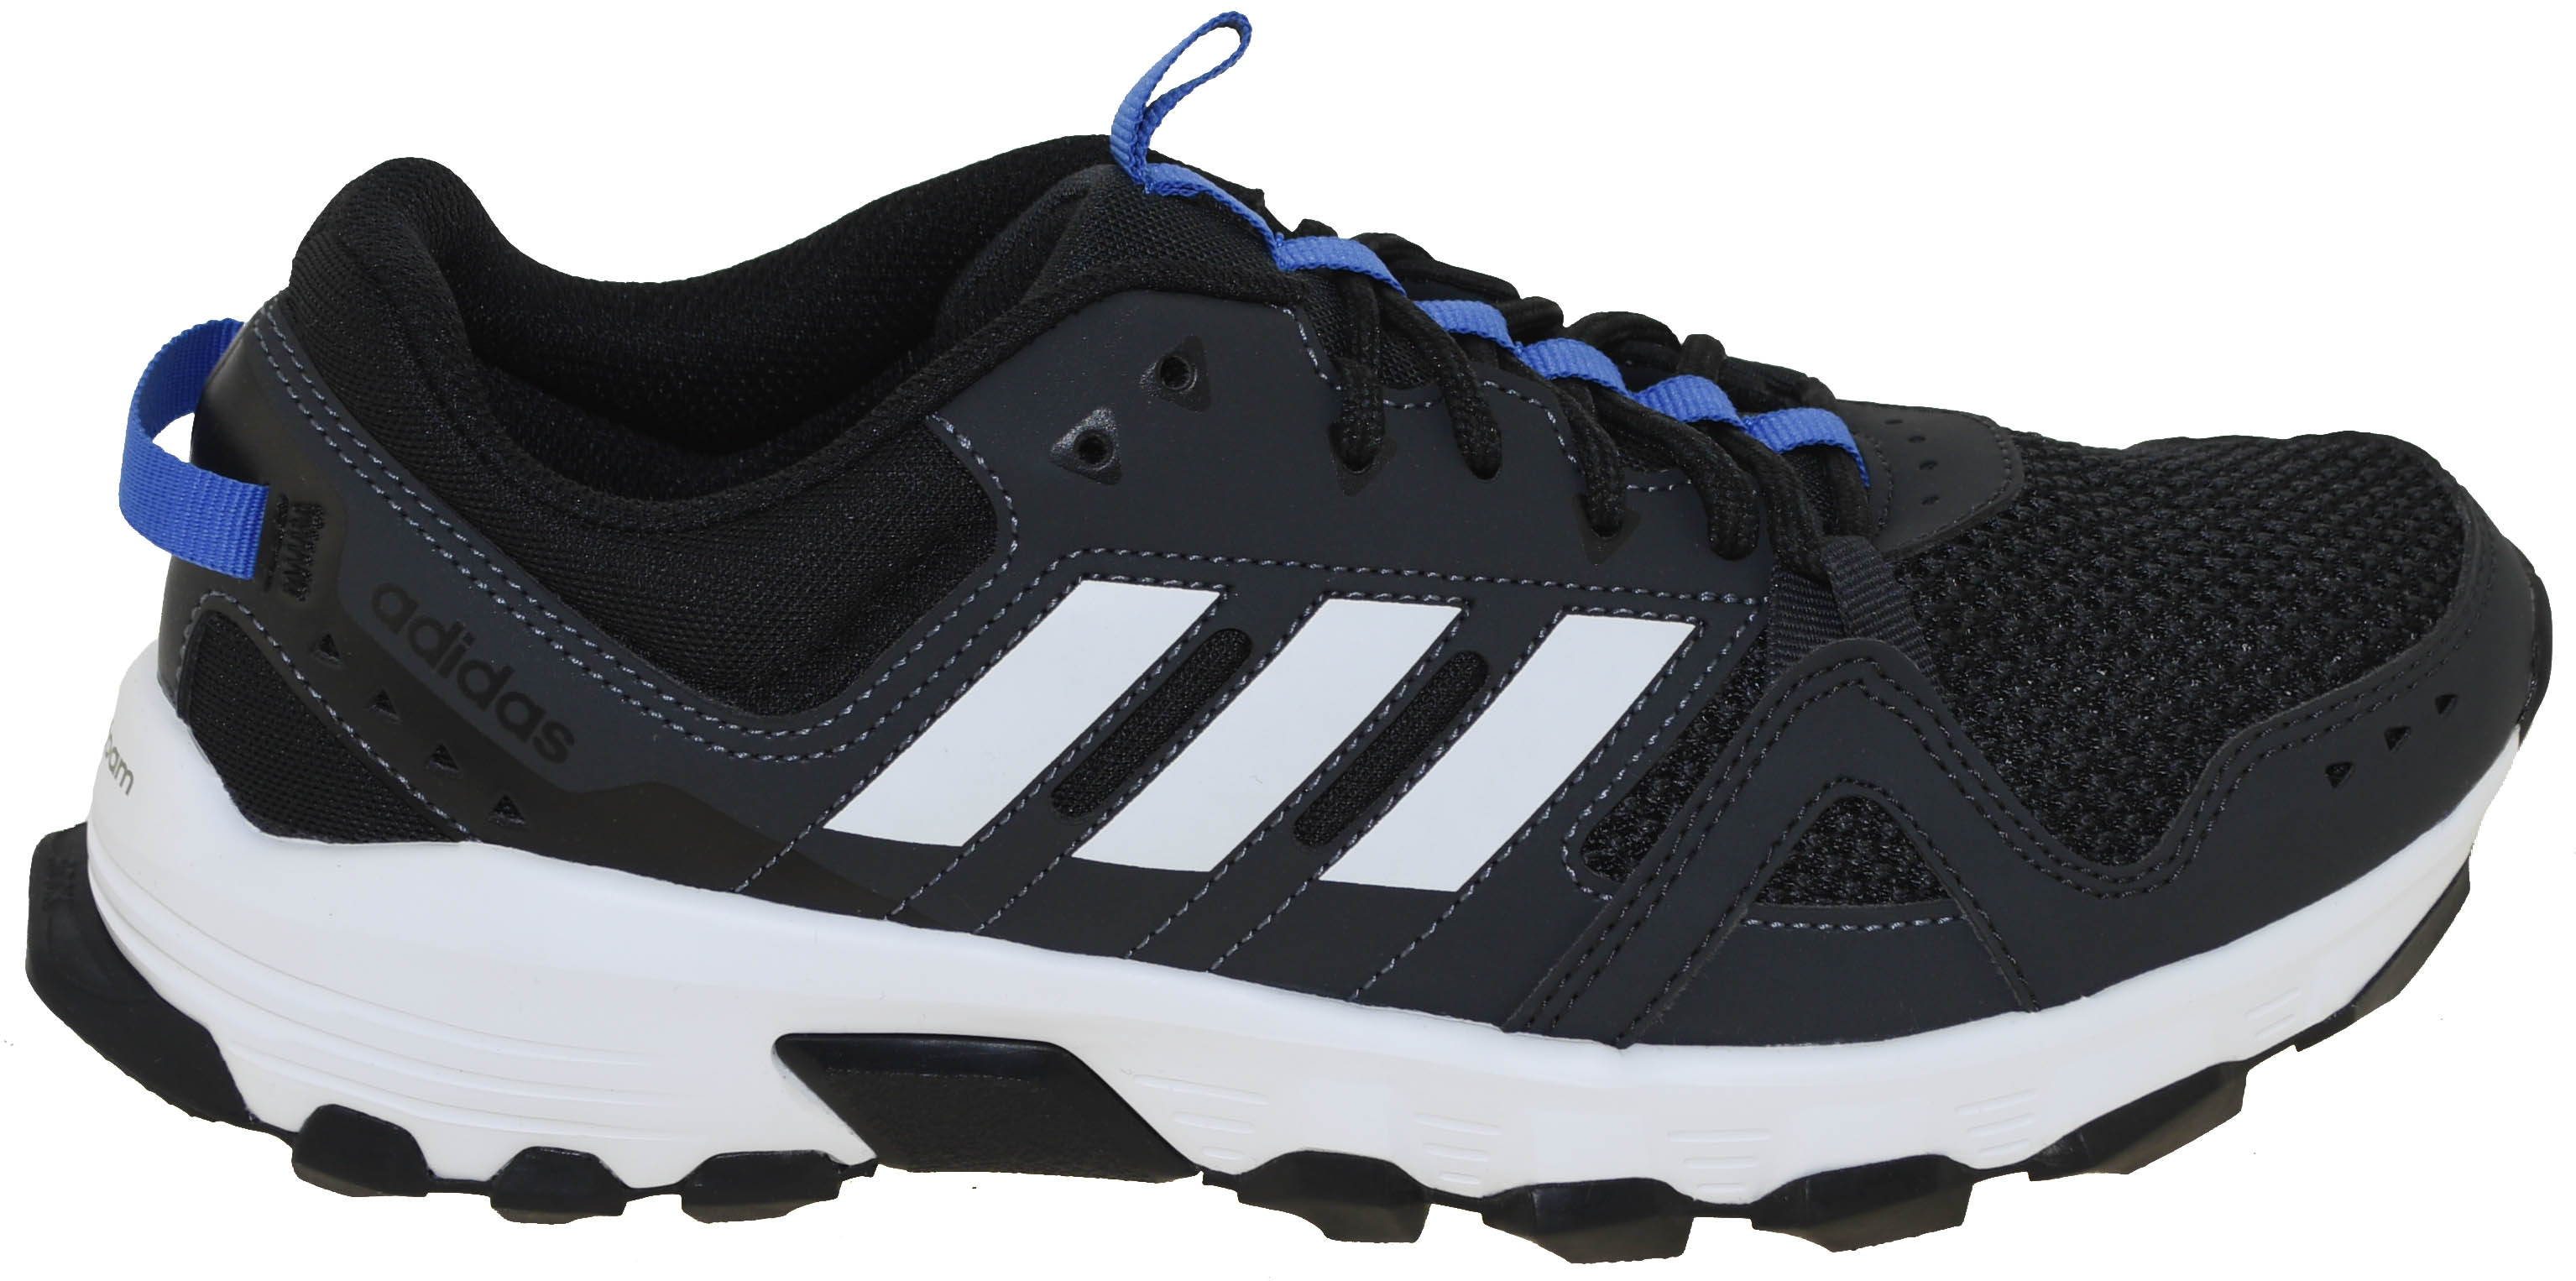 Adidas Men s Rockadia Trail Shoes Style CM7212 Carbon White Blue  a3d7ddcab